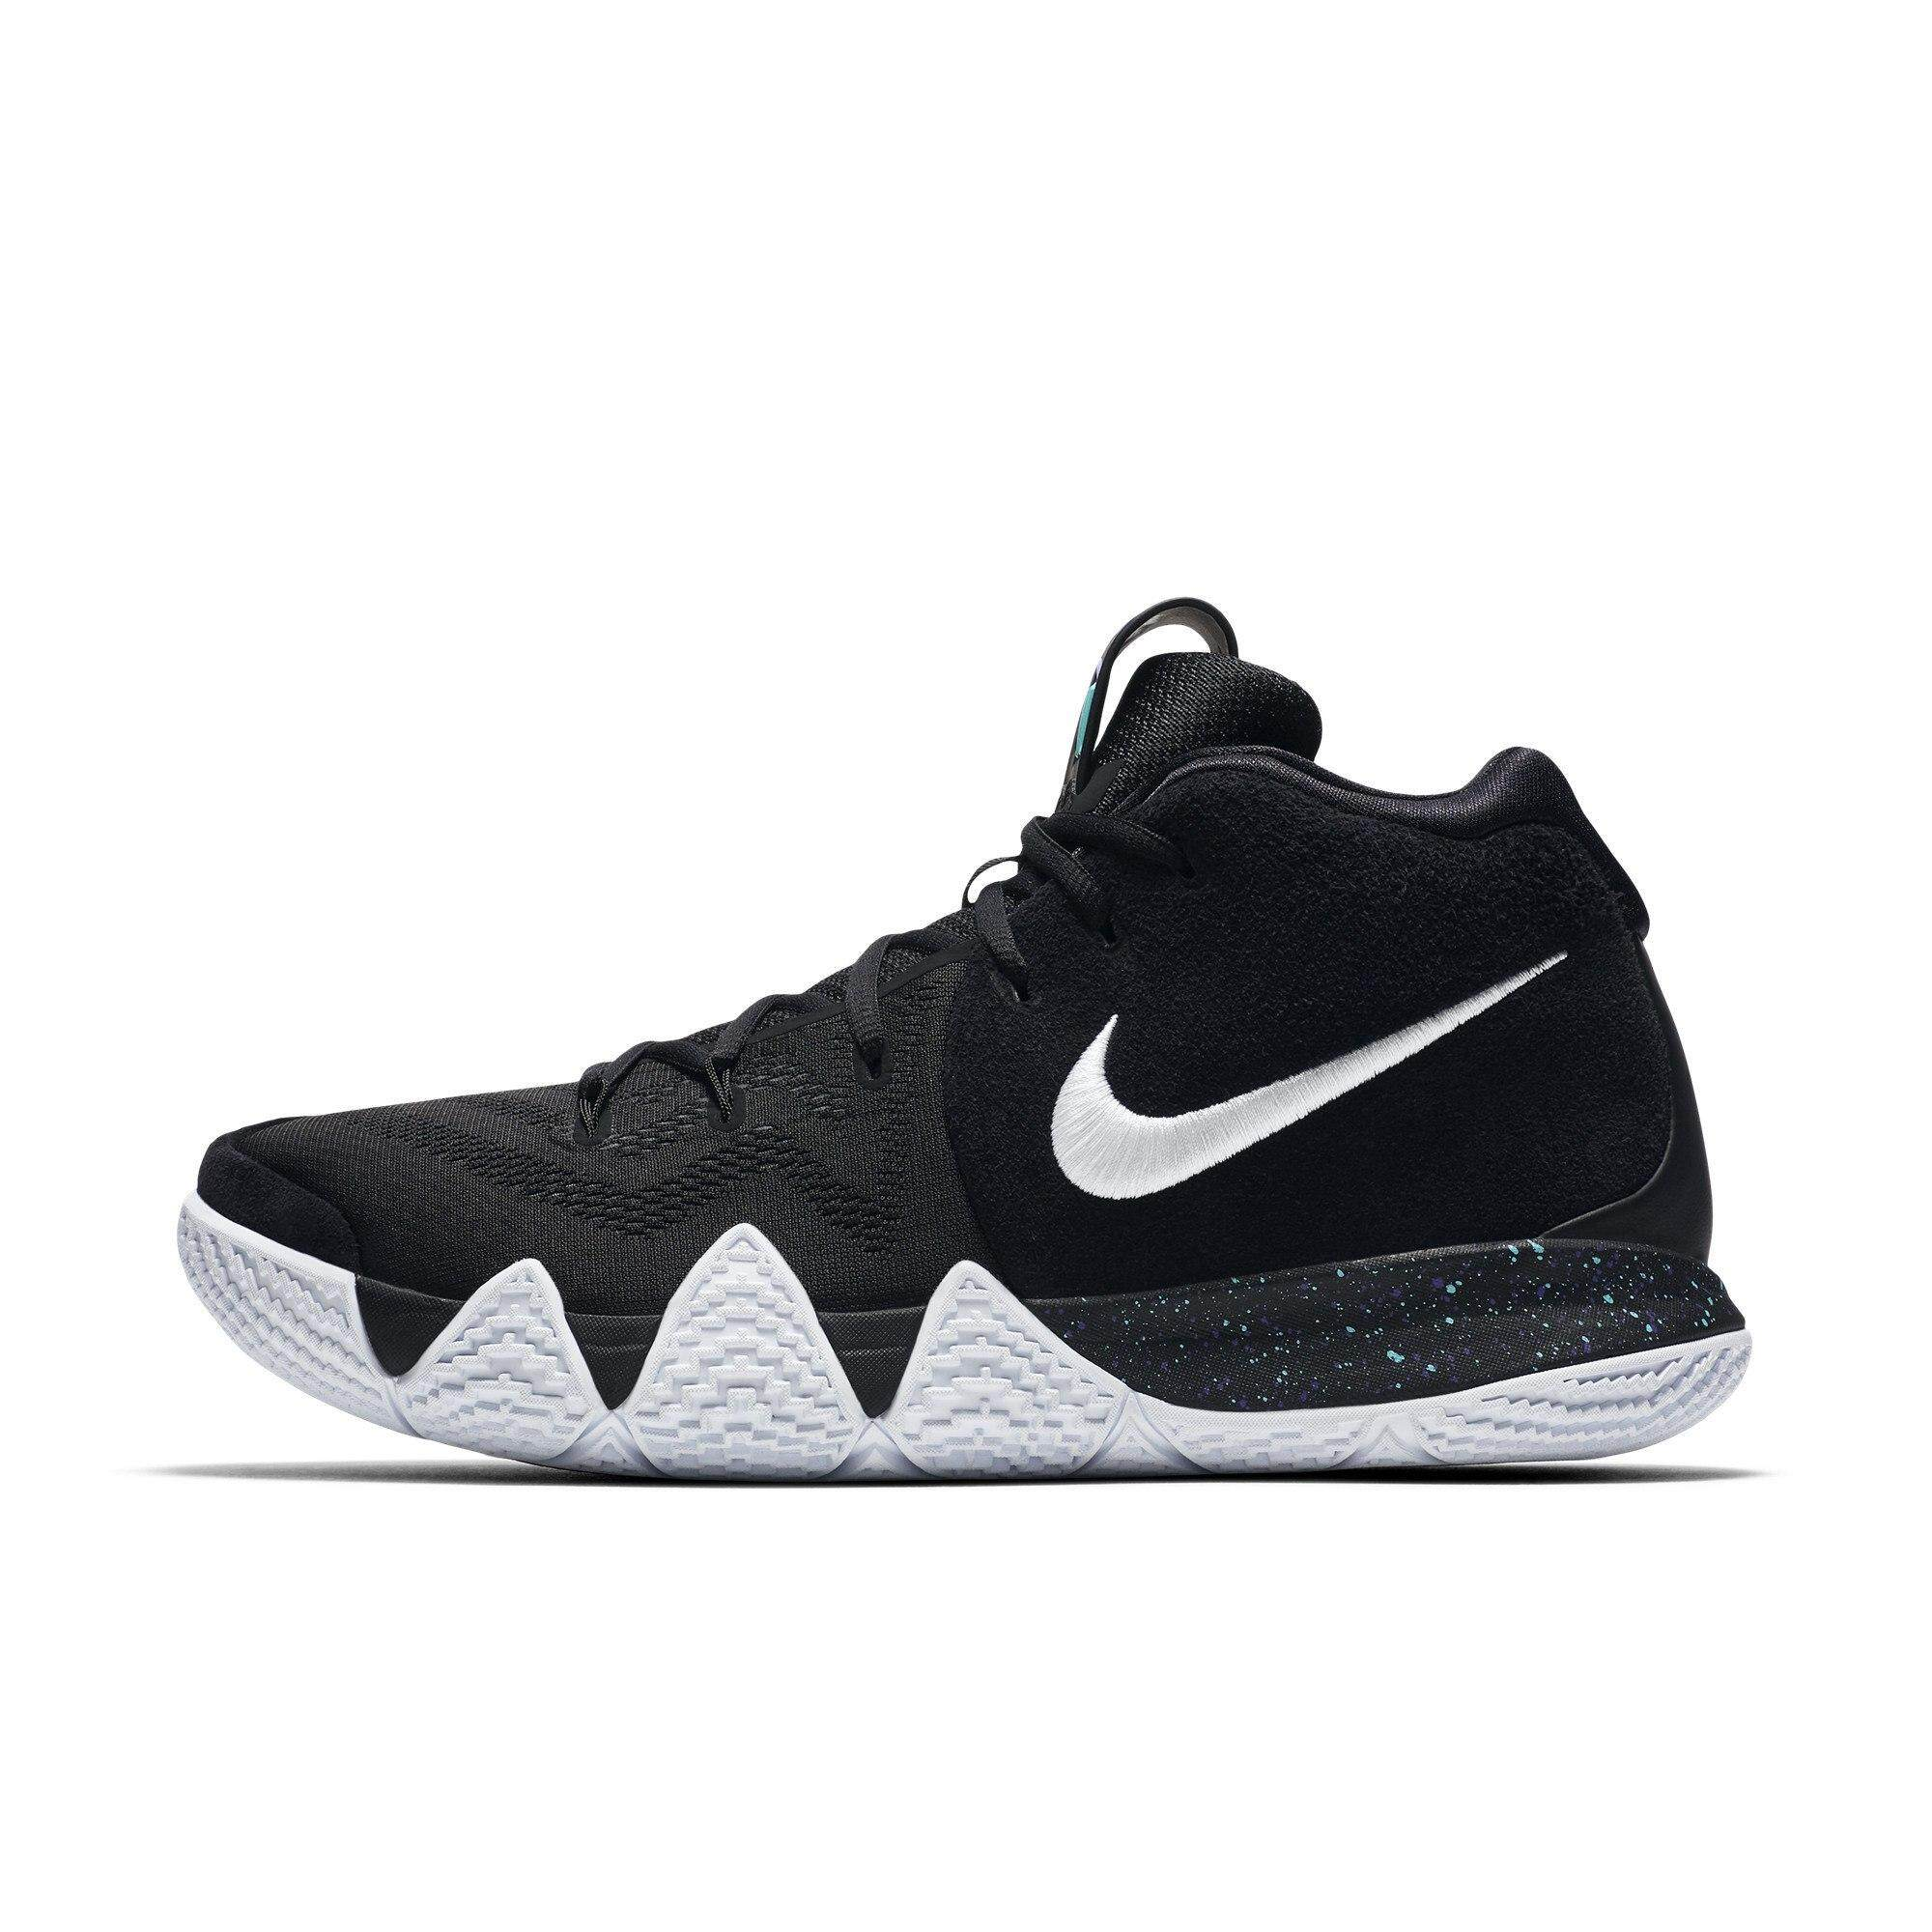 4edcf7e6d nike Kyrie 2 EP Irving 4th Generation Men s Basketball Shoes Sport Outdoor  Sneakers